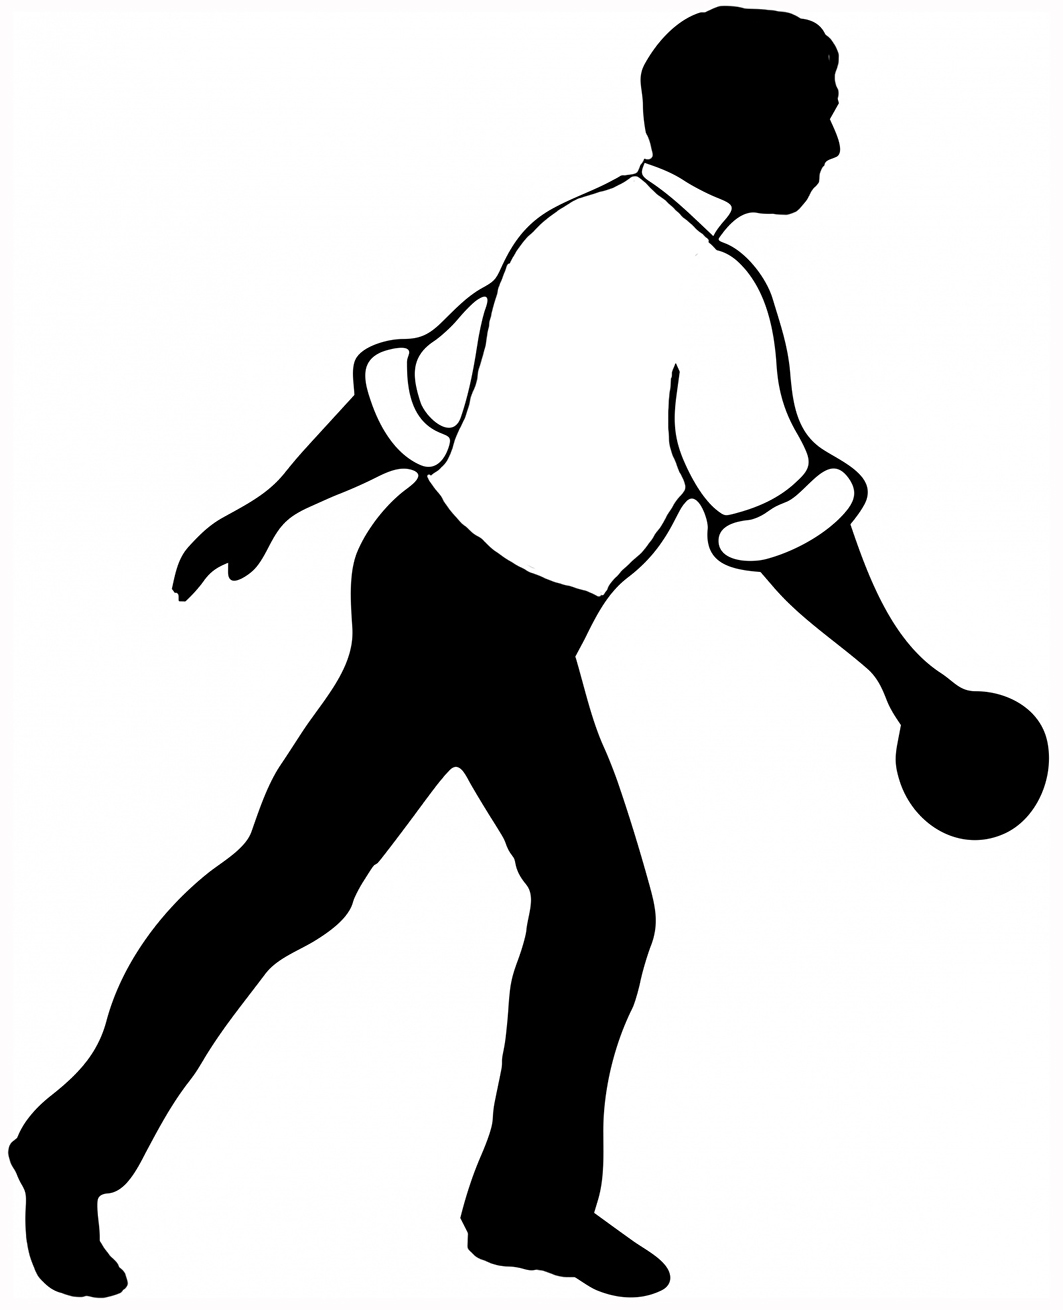 man in white shirt bowling picture